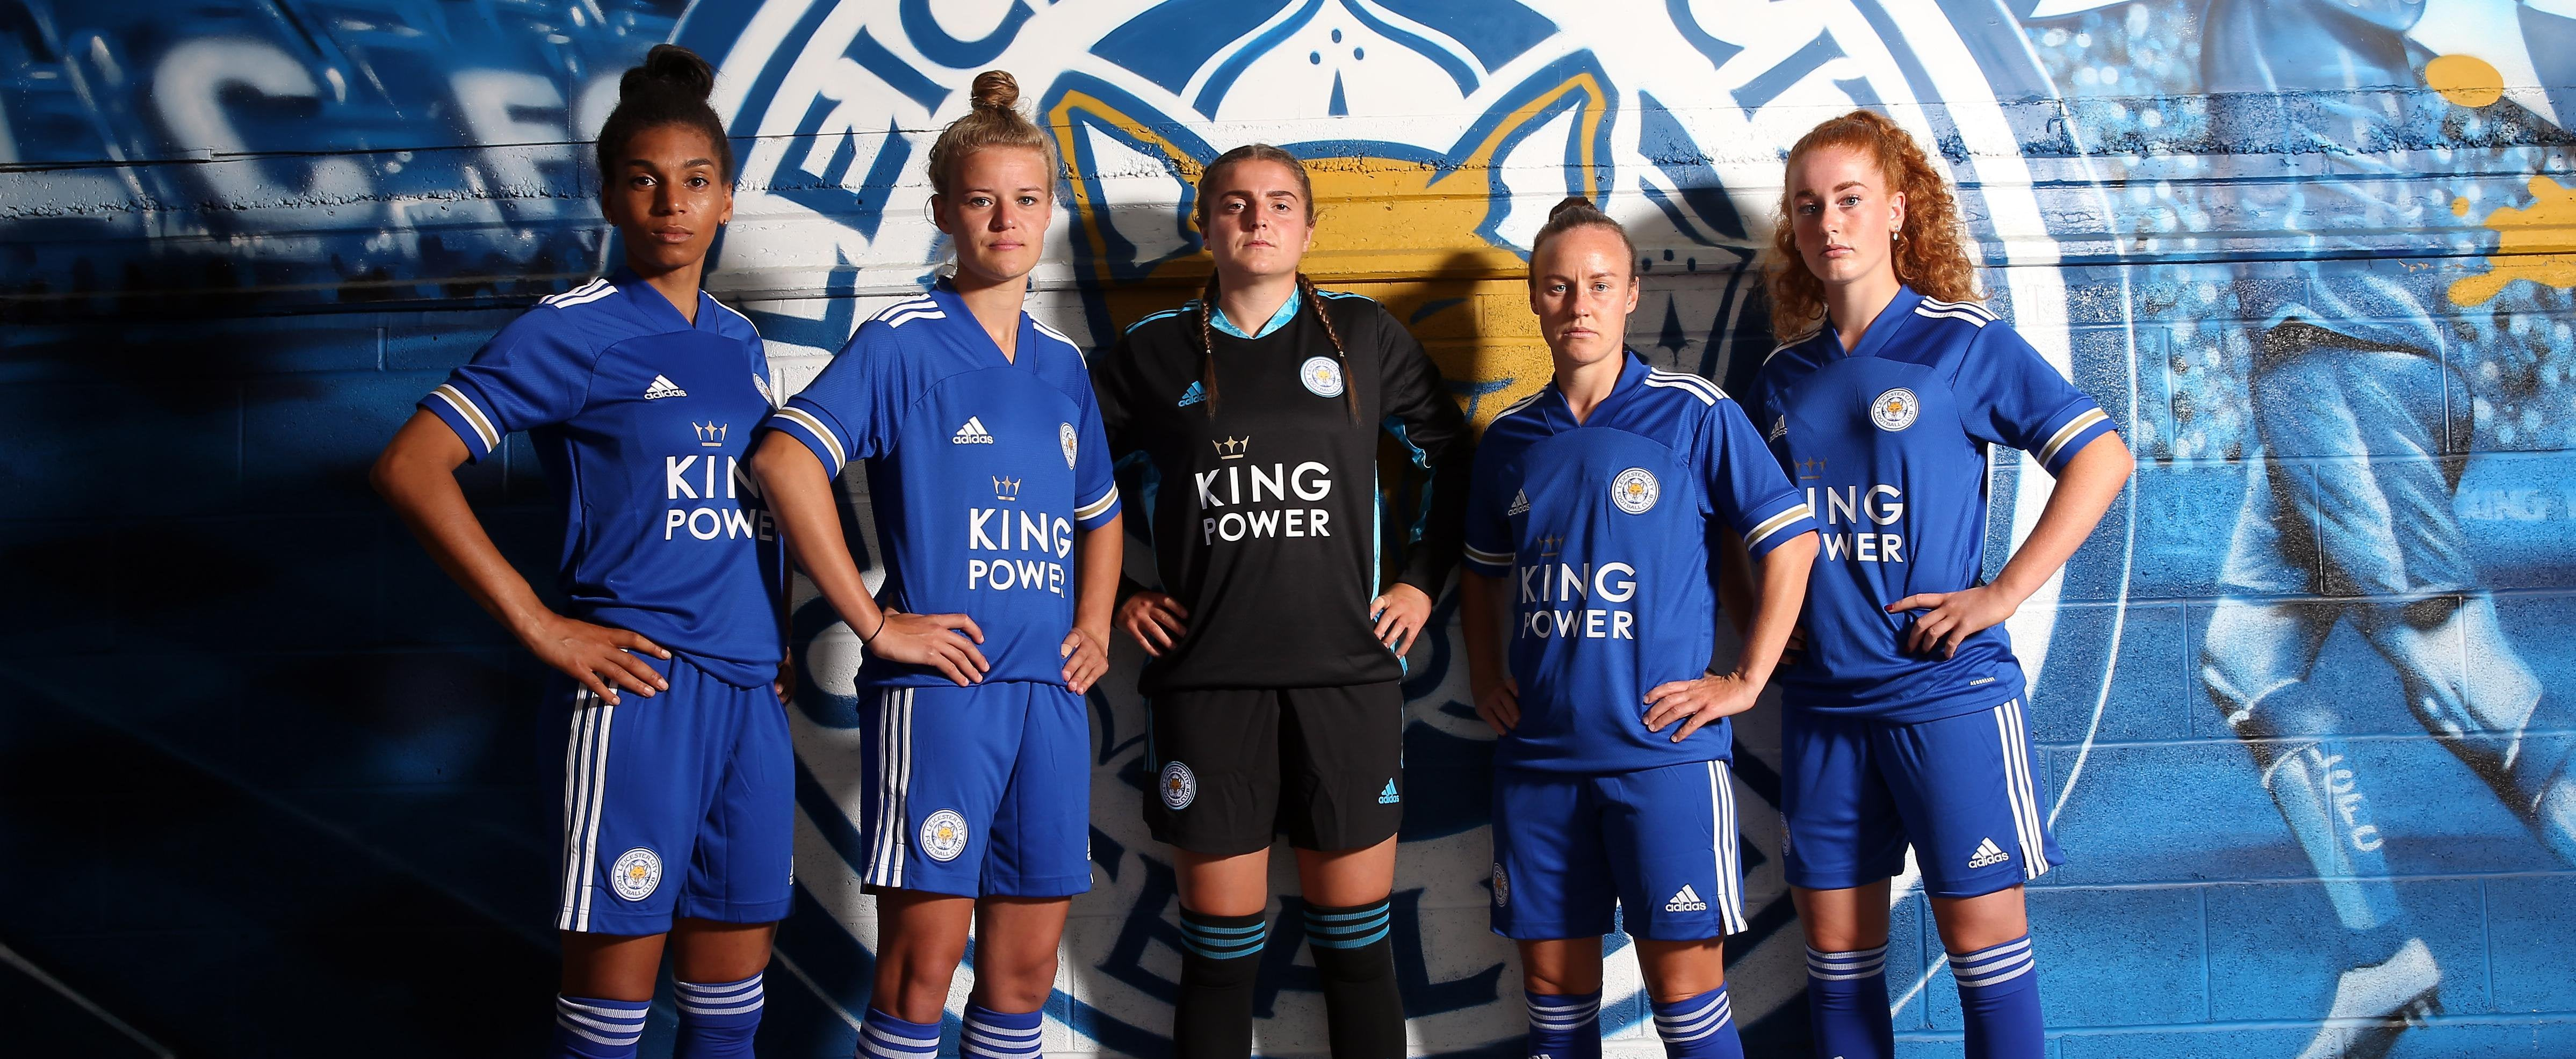 Leicester City Women turn fully professional and announce 11 new signings after formally joining up with LCFC : WomensSoccer